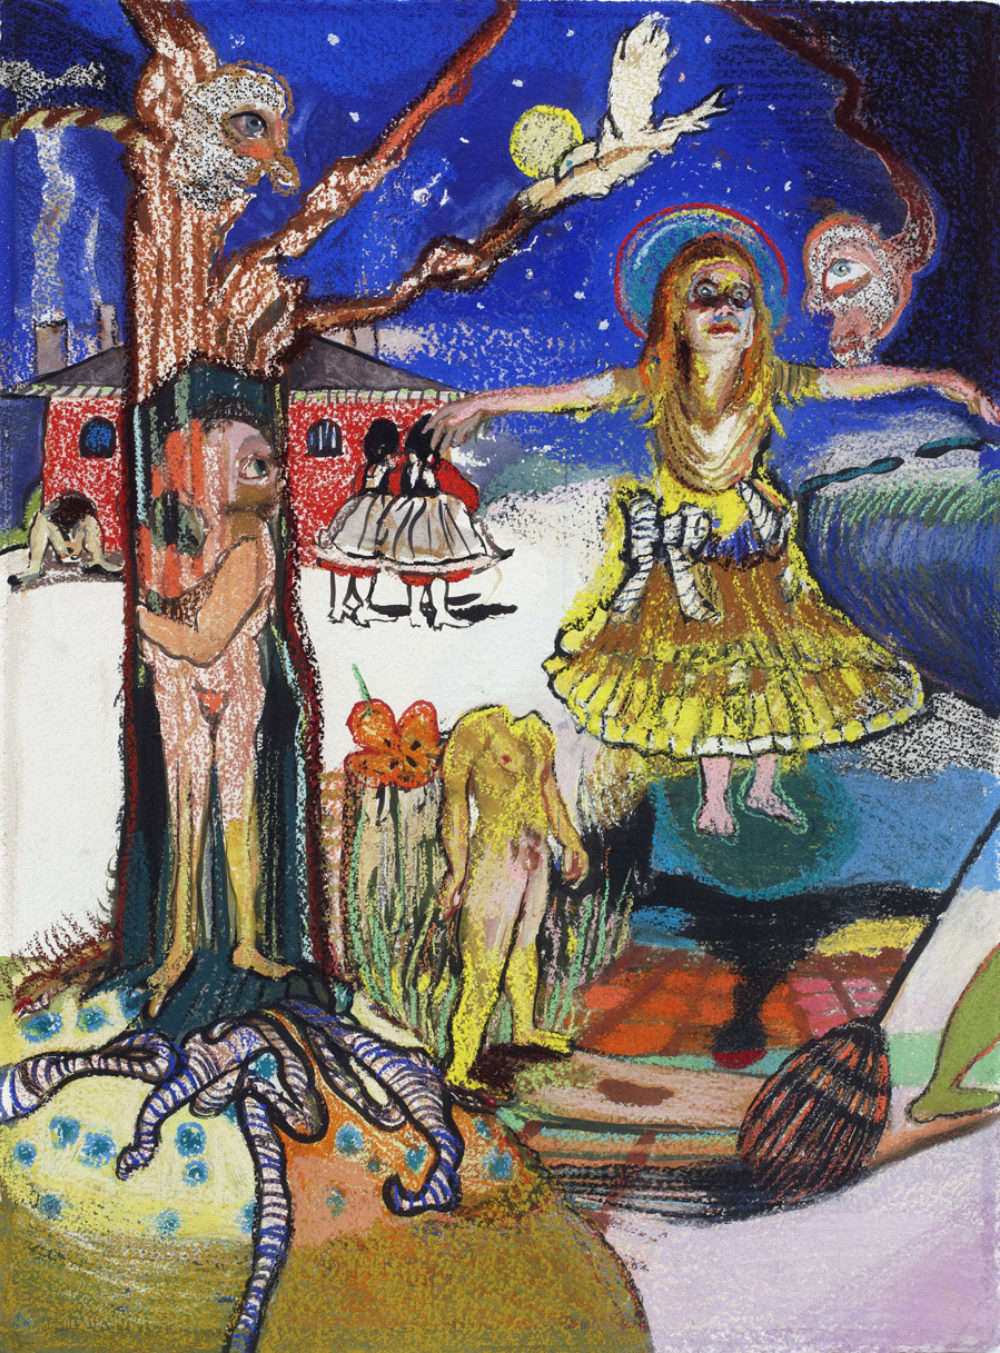 Natalie Frank, Cinderella II, 2011–14, Gouache and chalk pastel on Arches paper, 22 × 30 inches (55.9 × 76.2 cm), Courtesy of  the Blanton Museum of Art, The University of Texas at Austin; Promised gift of Kathleen Irvin Loughlin and Chris Loughlin